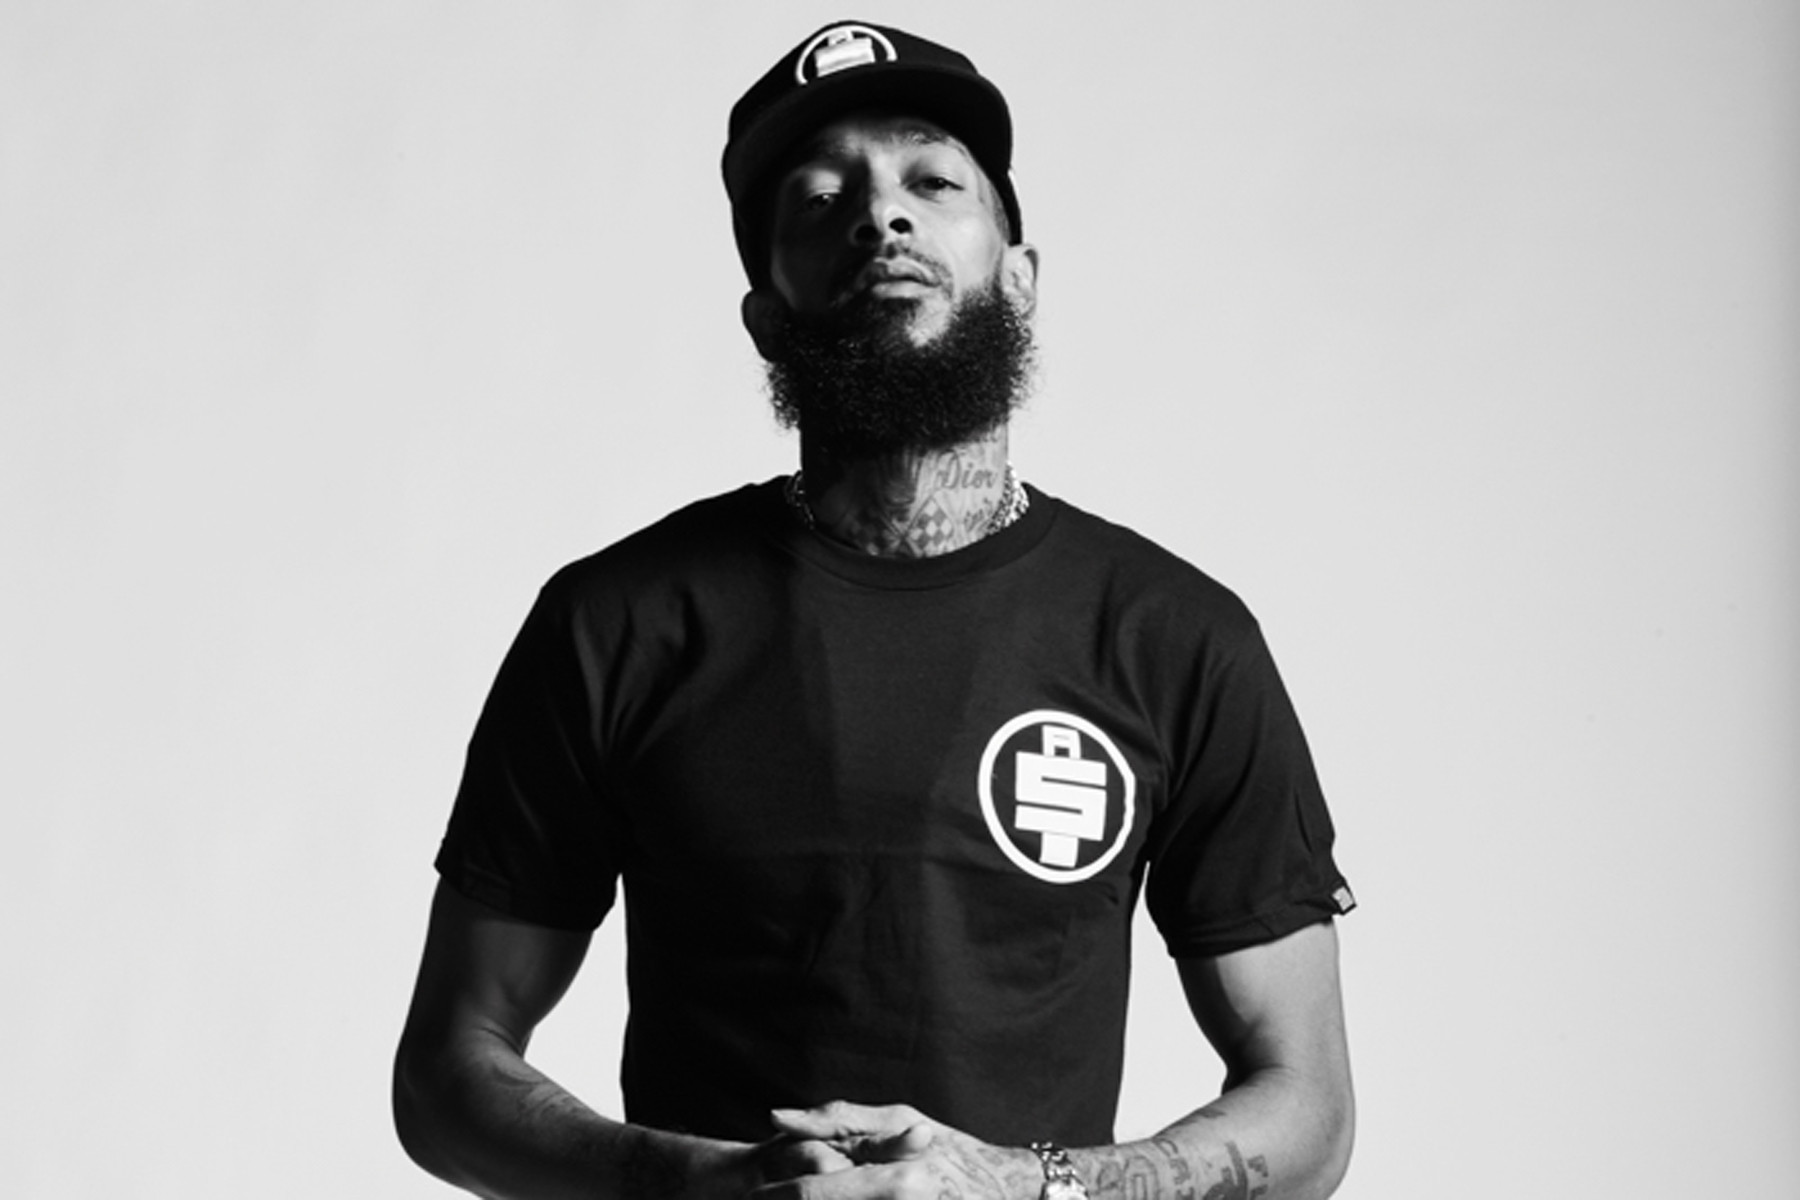 Swimming One Last Victory Lap – A 'Thank You' to Nipsey Hussle & Mac Miller